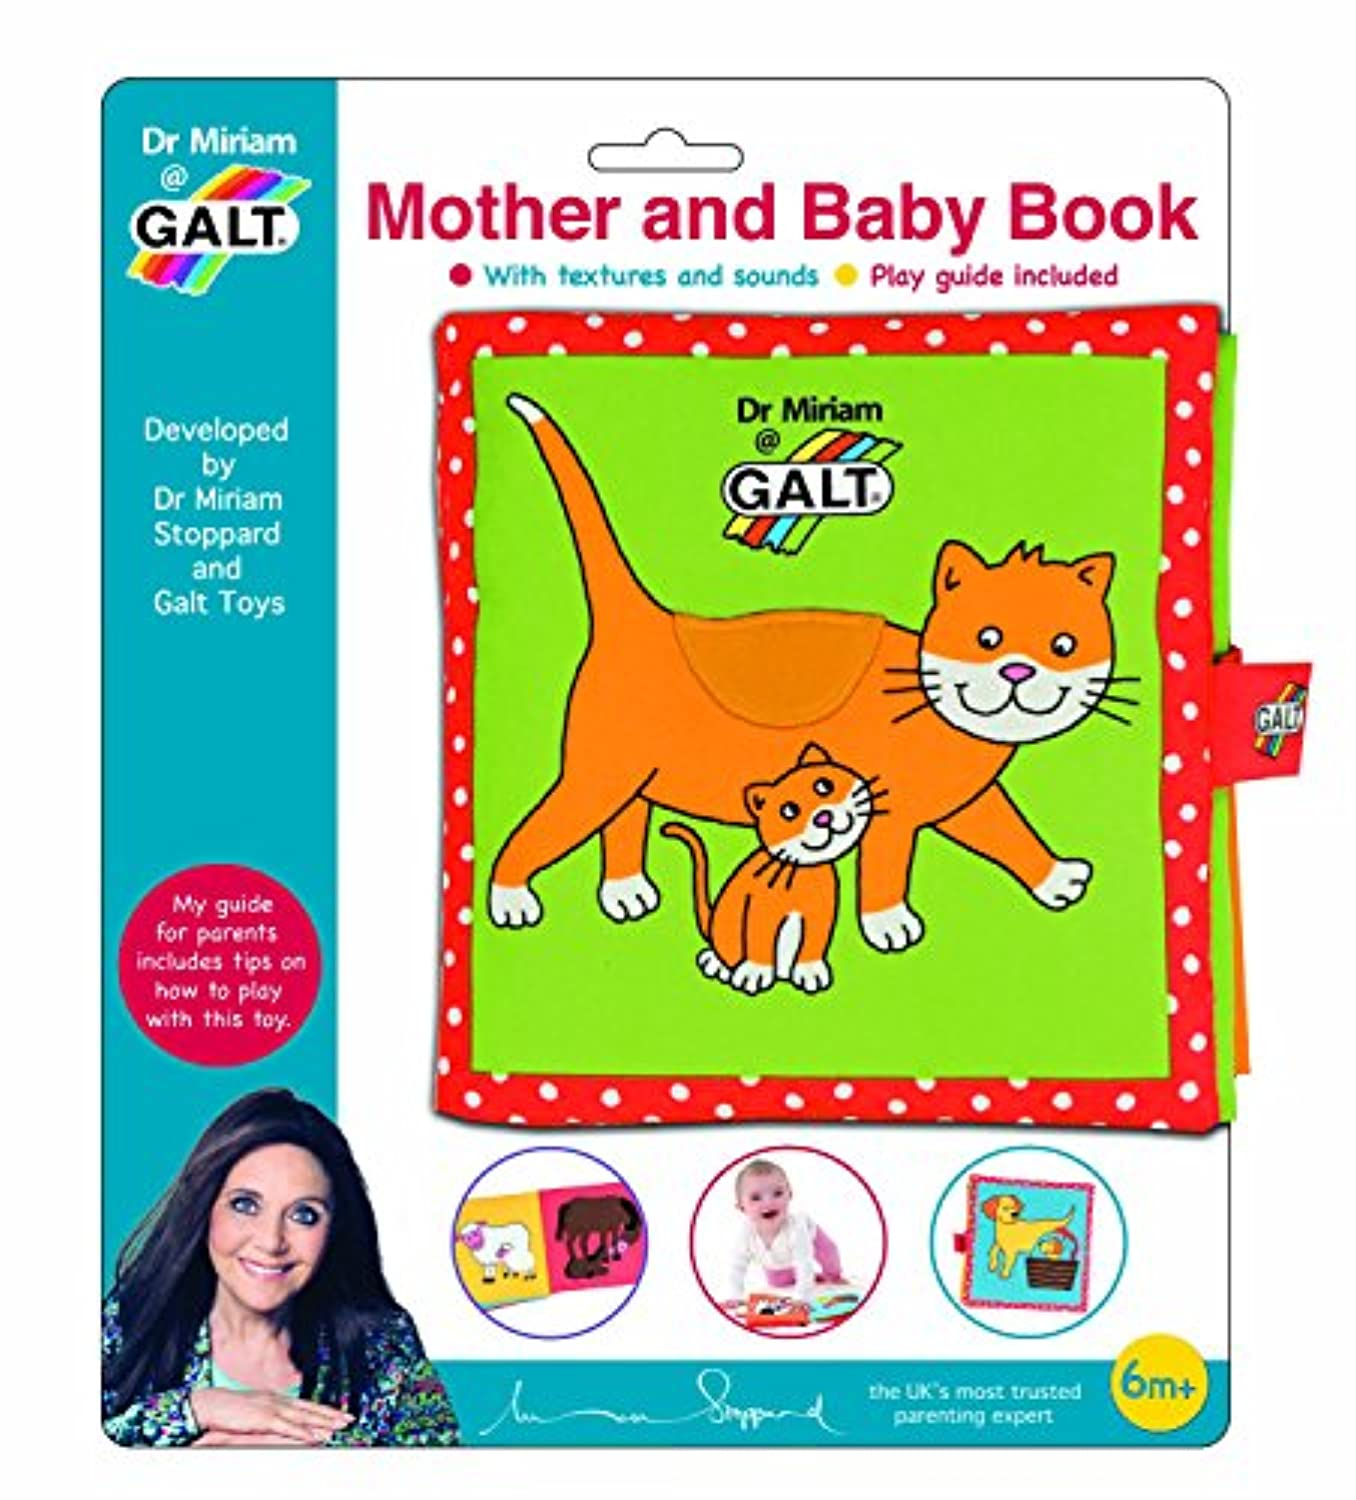 MOTHER AND BABY BOOK